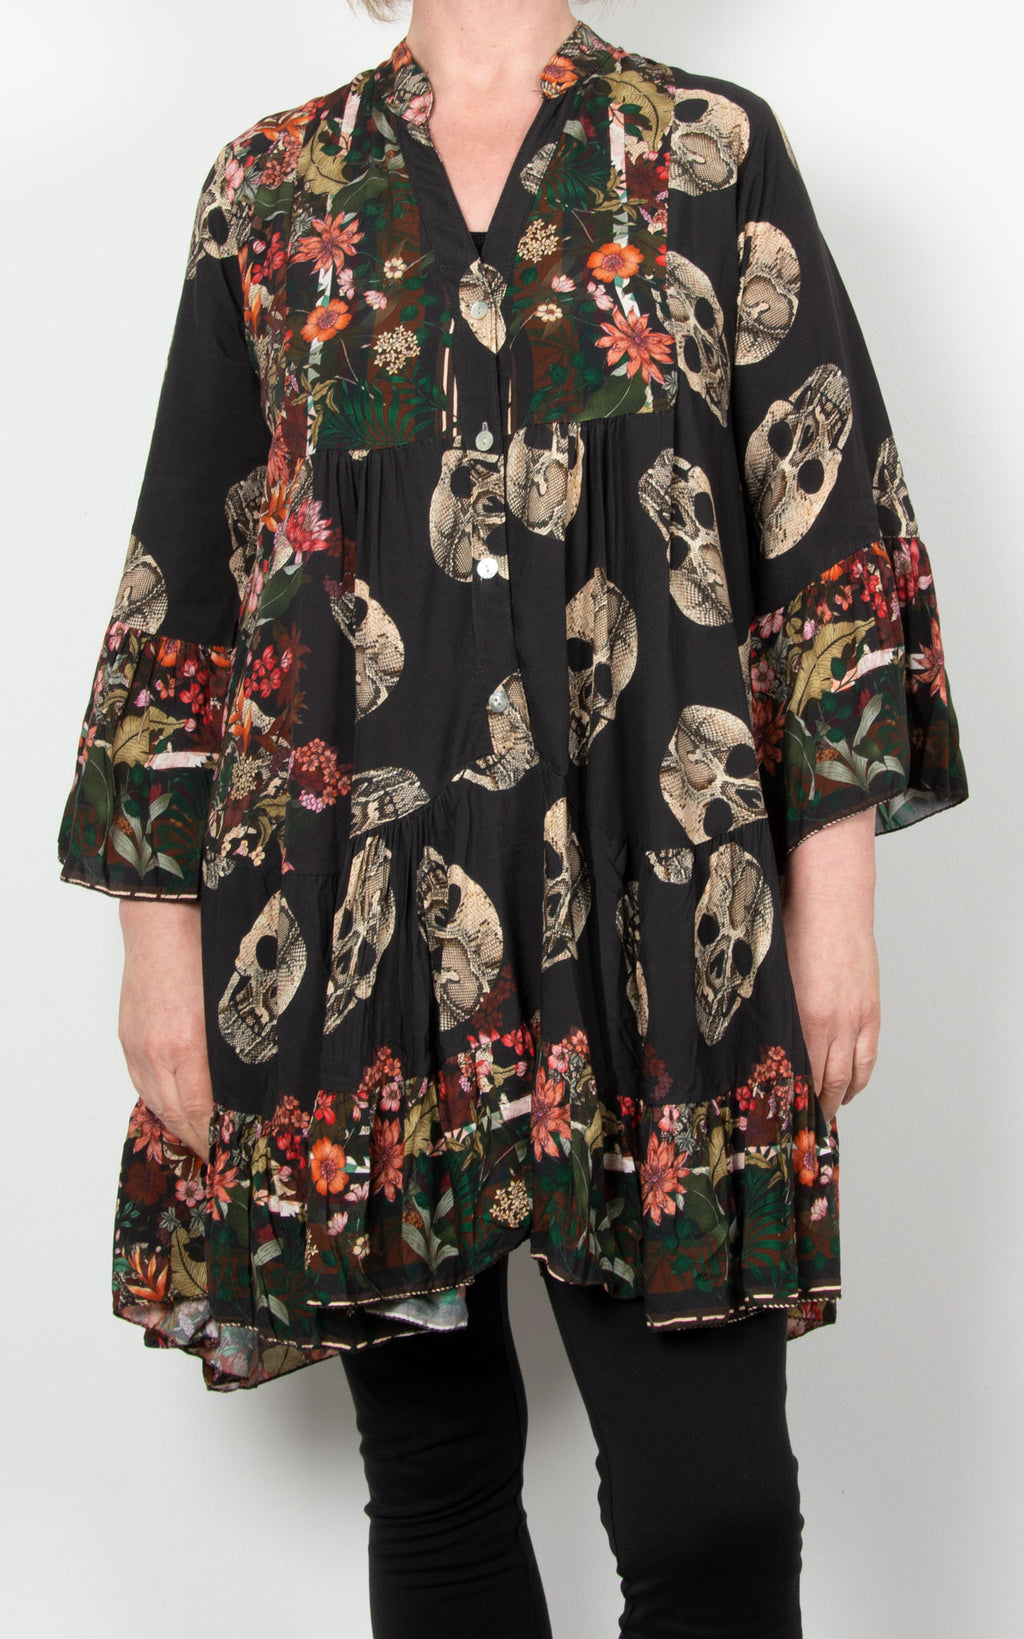 Alex Smock Dress | Skull & Roses | Black